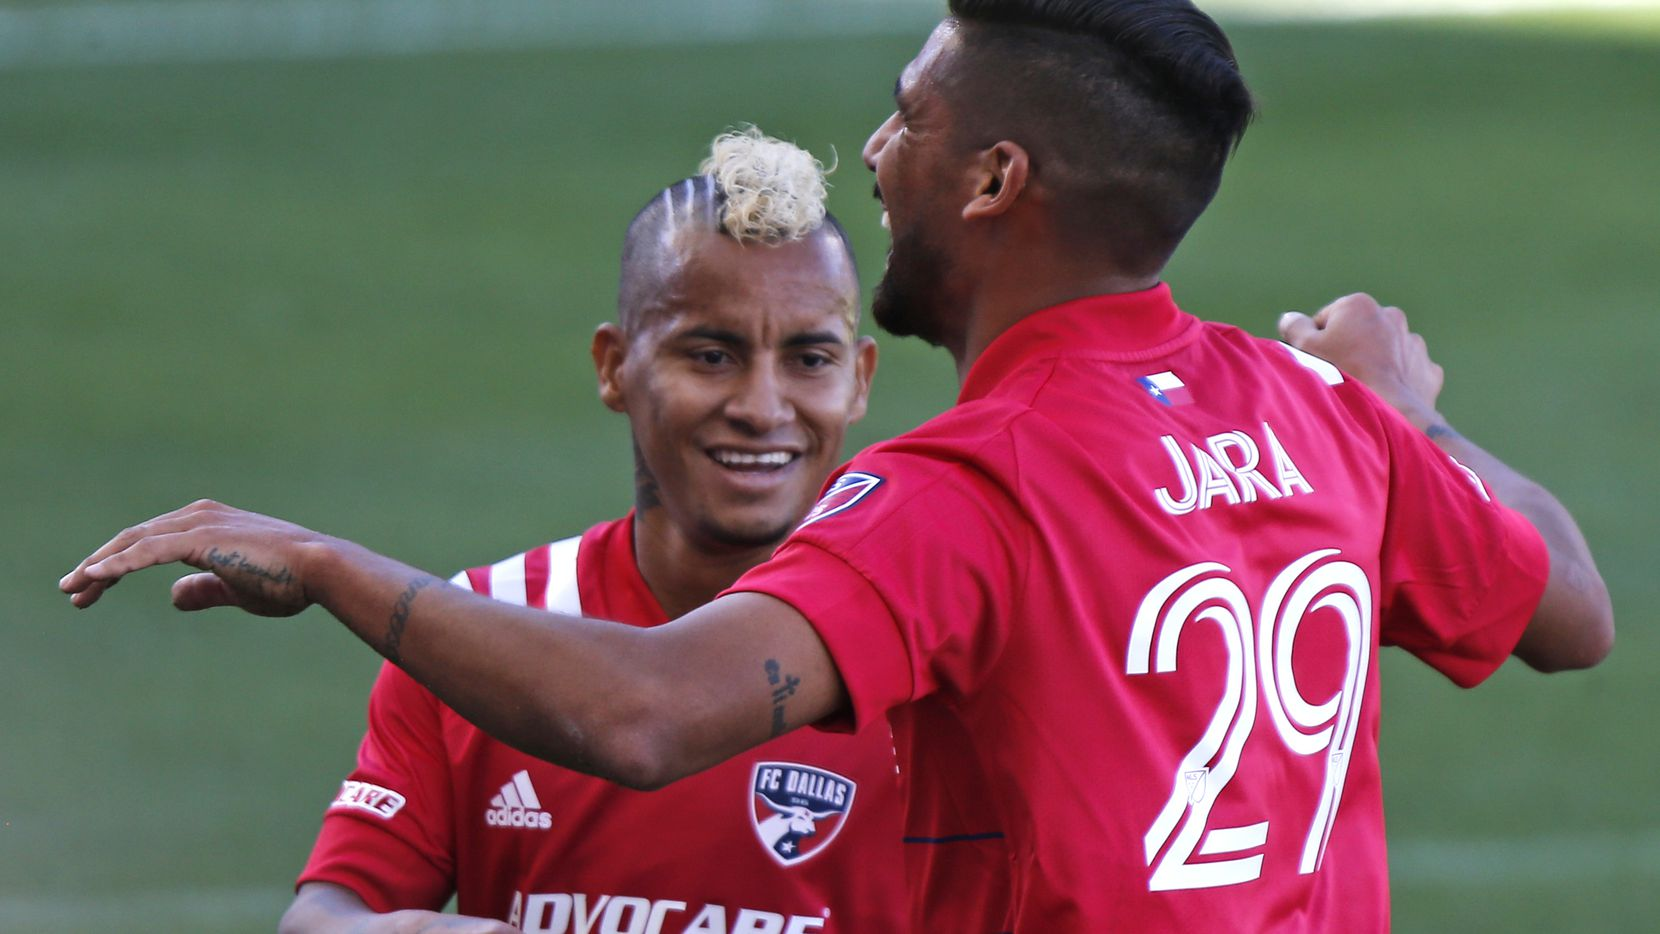 FC Dallas forward Franco Jara (29) is embraced by FC Dallas midfielder Michael Barrios (21) after Jara scored a goal during the first half as FC Dallas hosted the Houston Dynamo at Toyota Stadium in Frisco on Saturday afternoon, October 31, 2020. (Stewart F. House/Special Contributor)